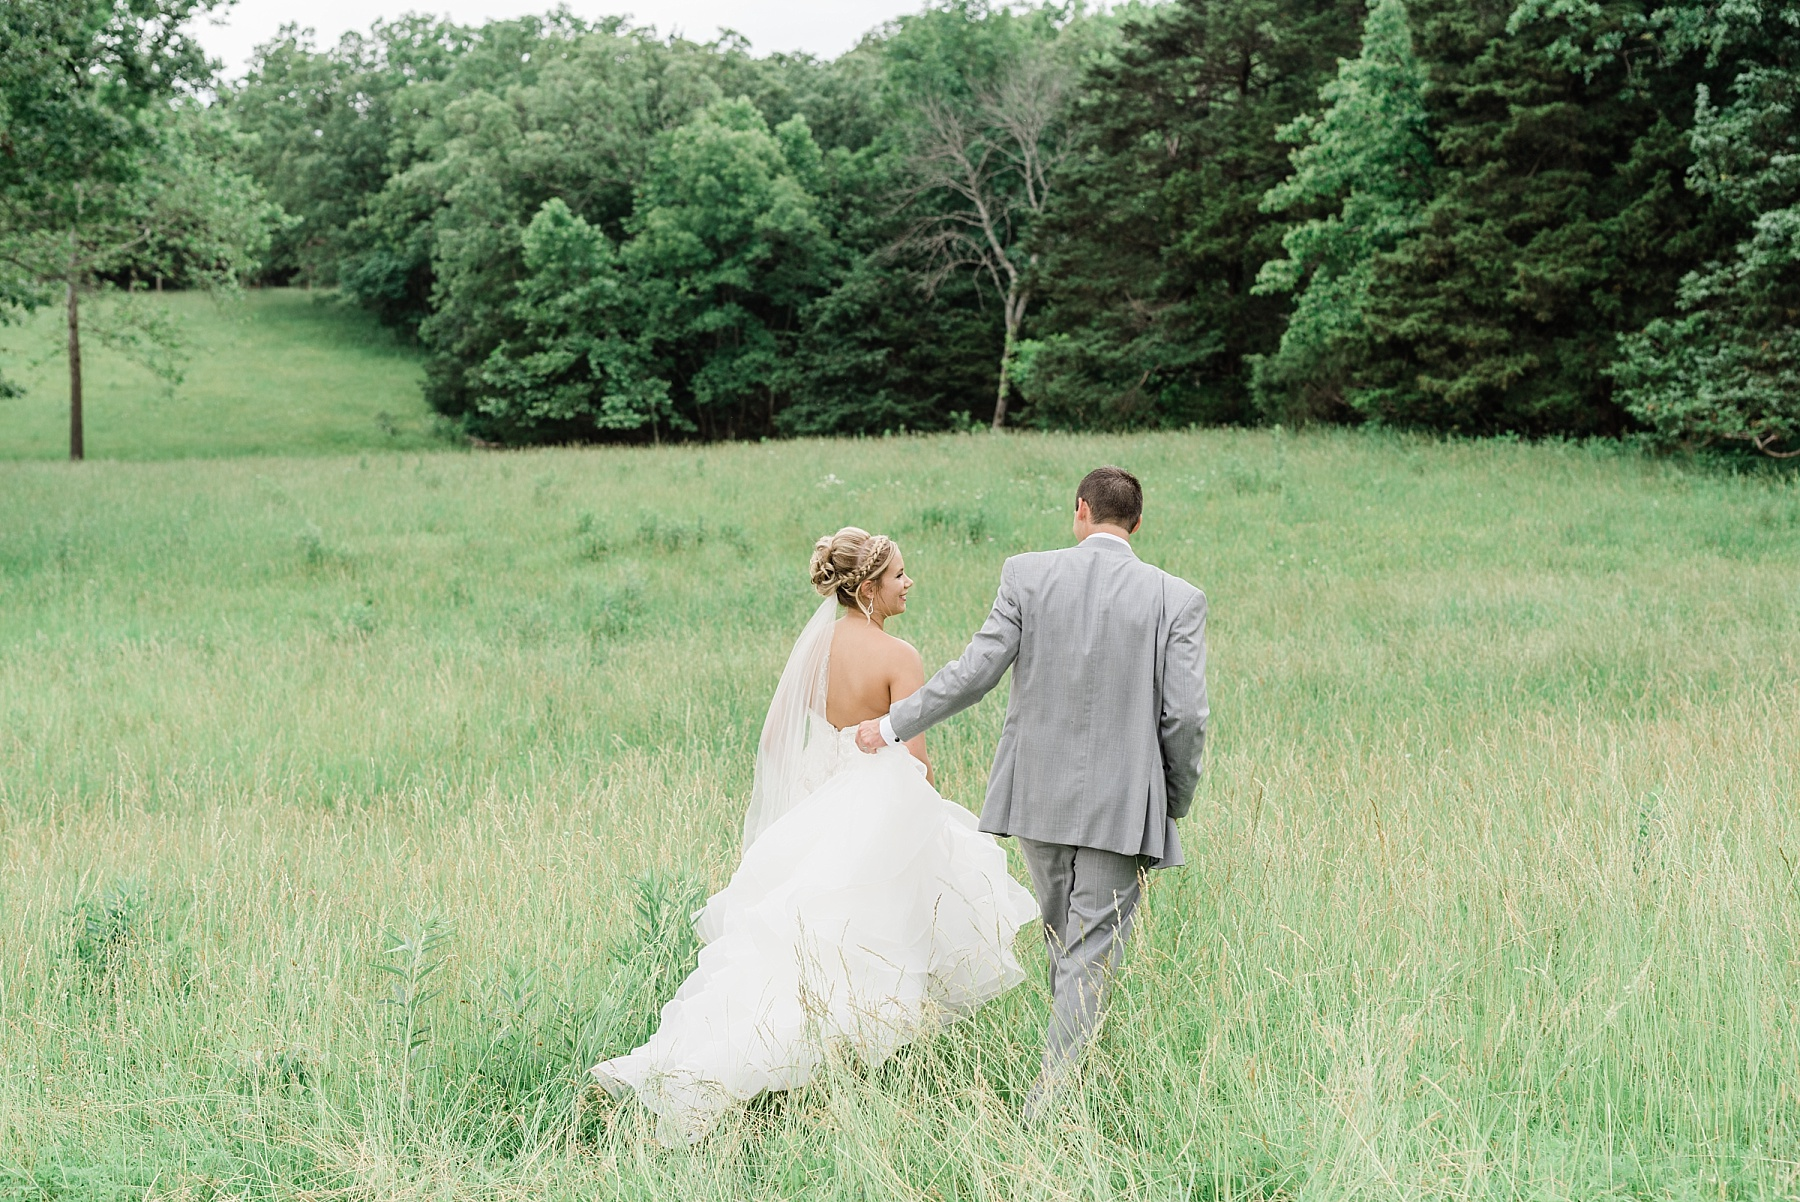 Sky Blue and Quartz Spring Wedding at Open Fields of Family Farm by Kelsi Kliethermes Photography Best Missouri and Maui Wedding Photographer_0018.jpg